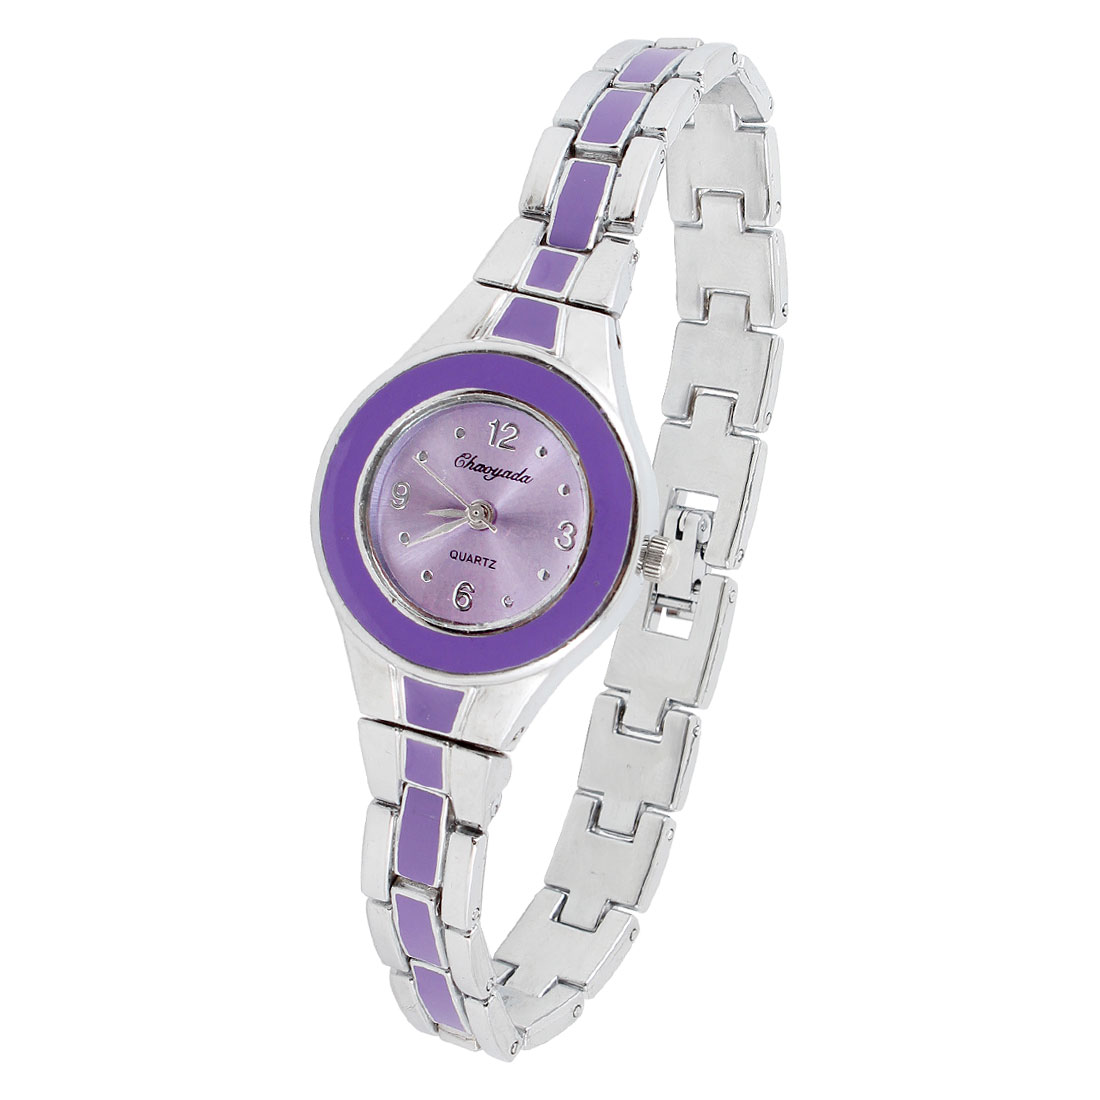 Alloy Purple Chain Linking Wristband Round Cover Wrist Watch for Lady